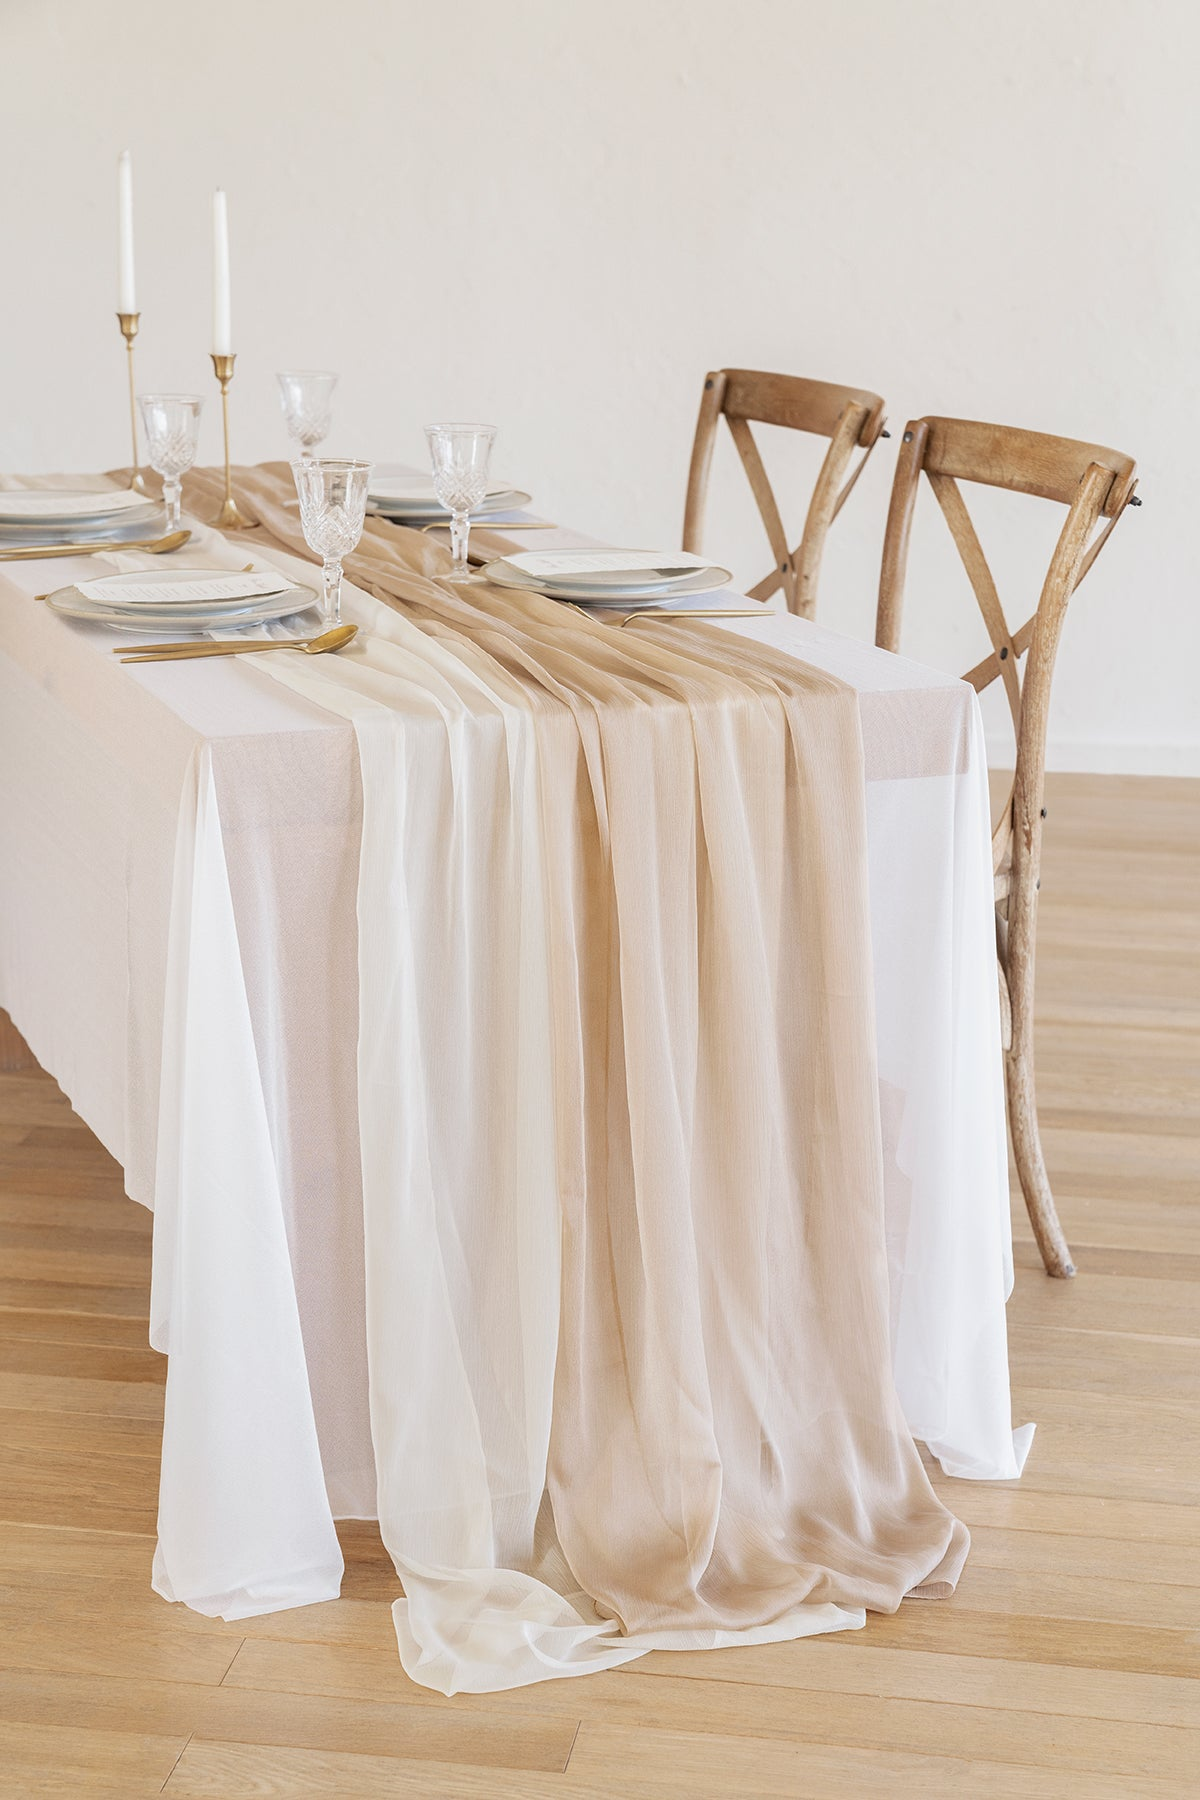 "Silky Chiffon Table Runner 30""w x 10FT (Set of 2) - Nude & Cream"